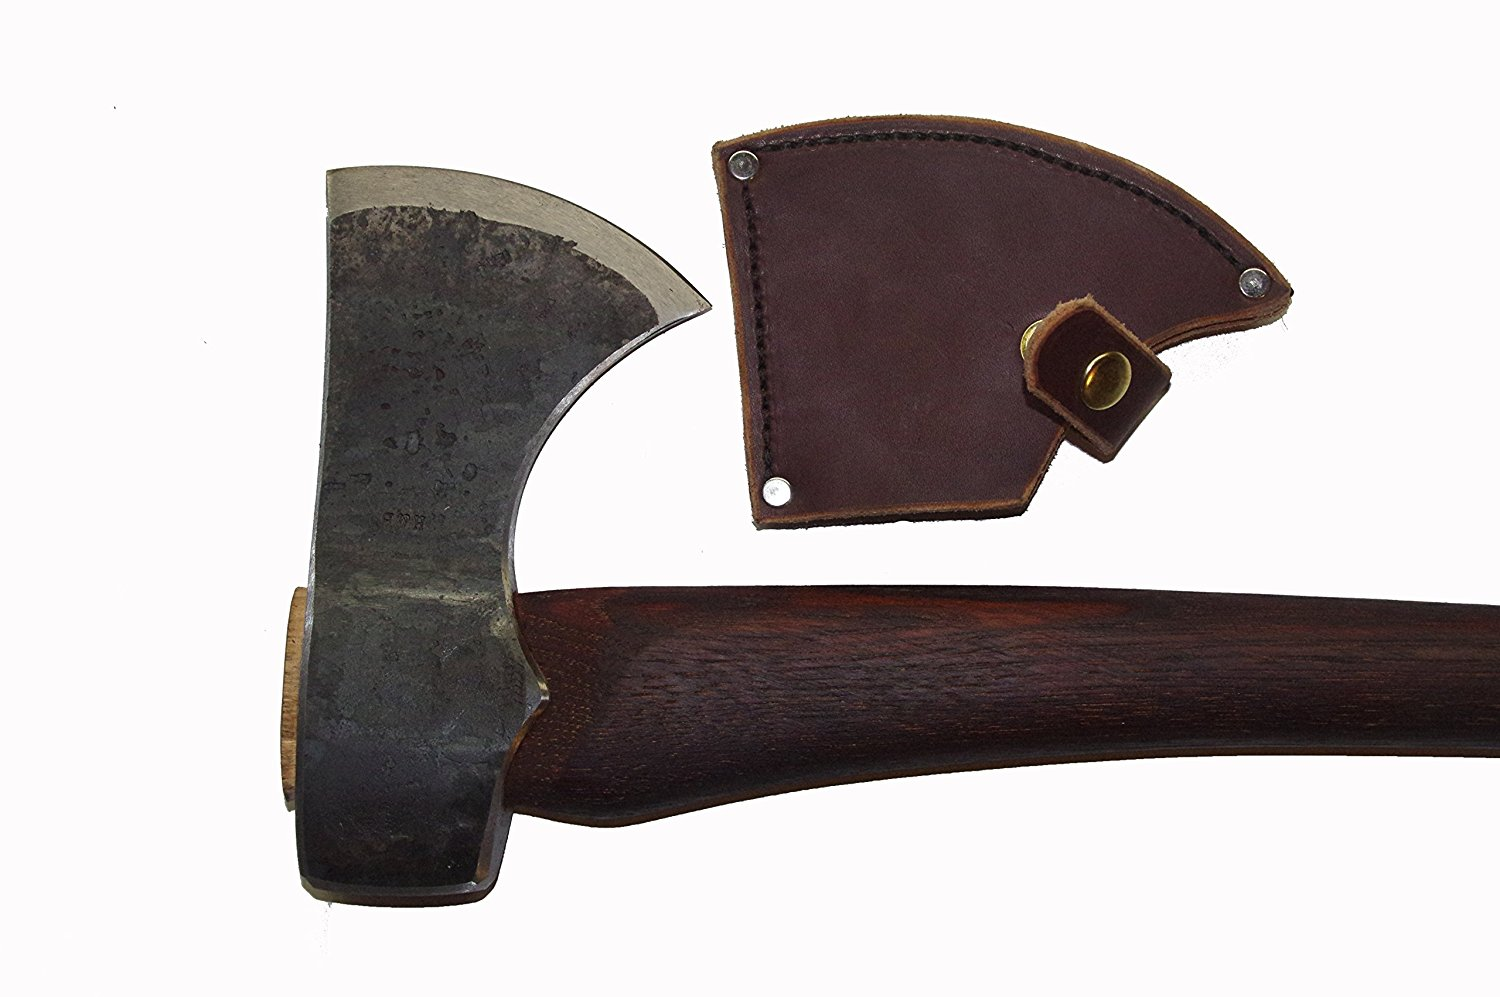 hand-forged-felling-axe